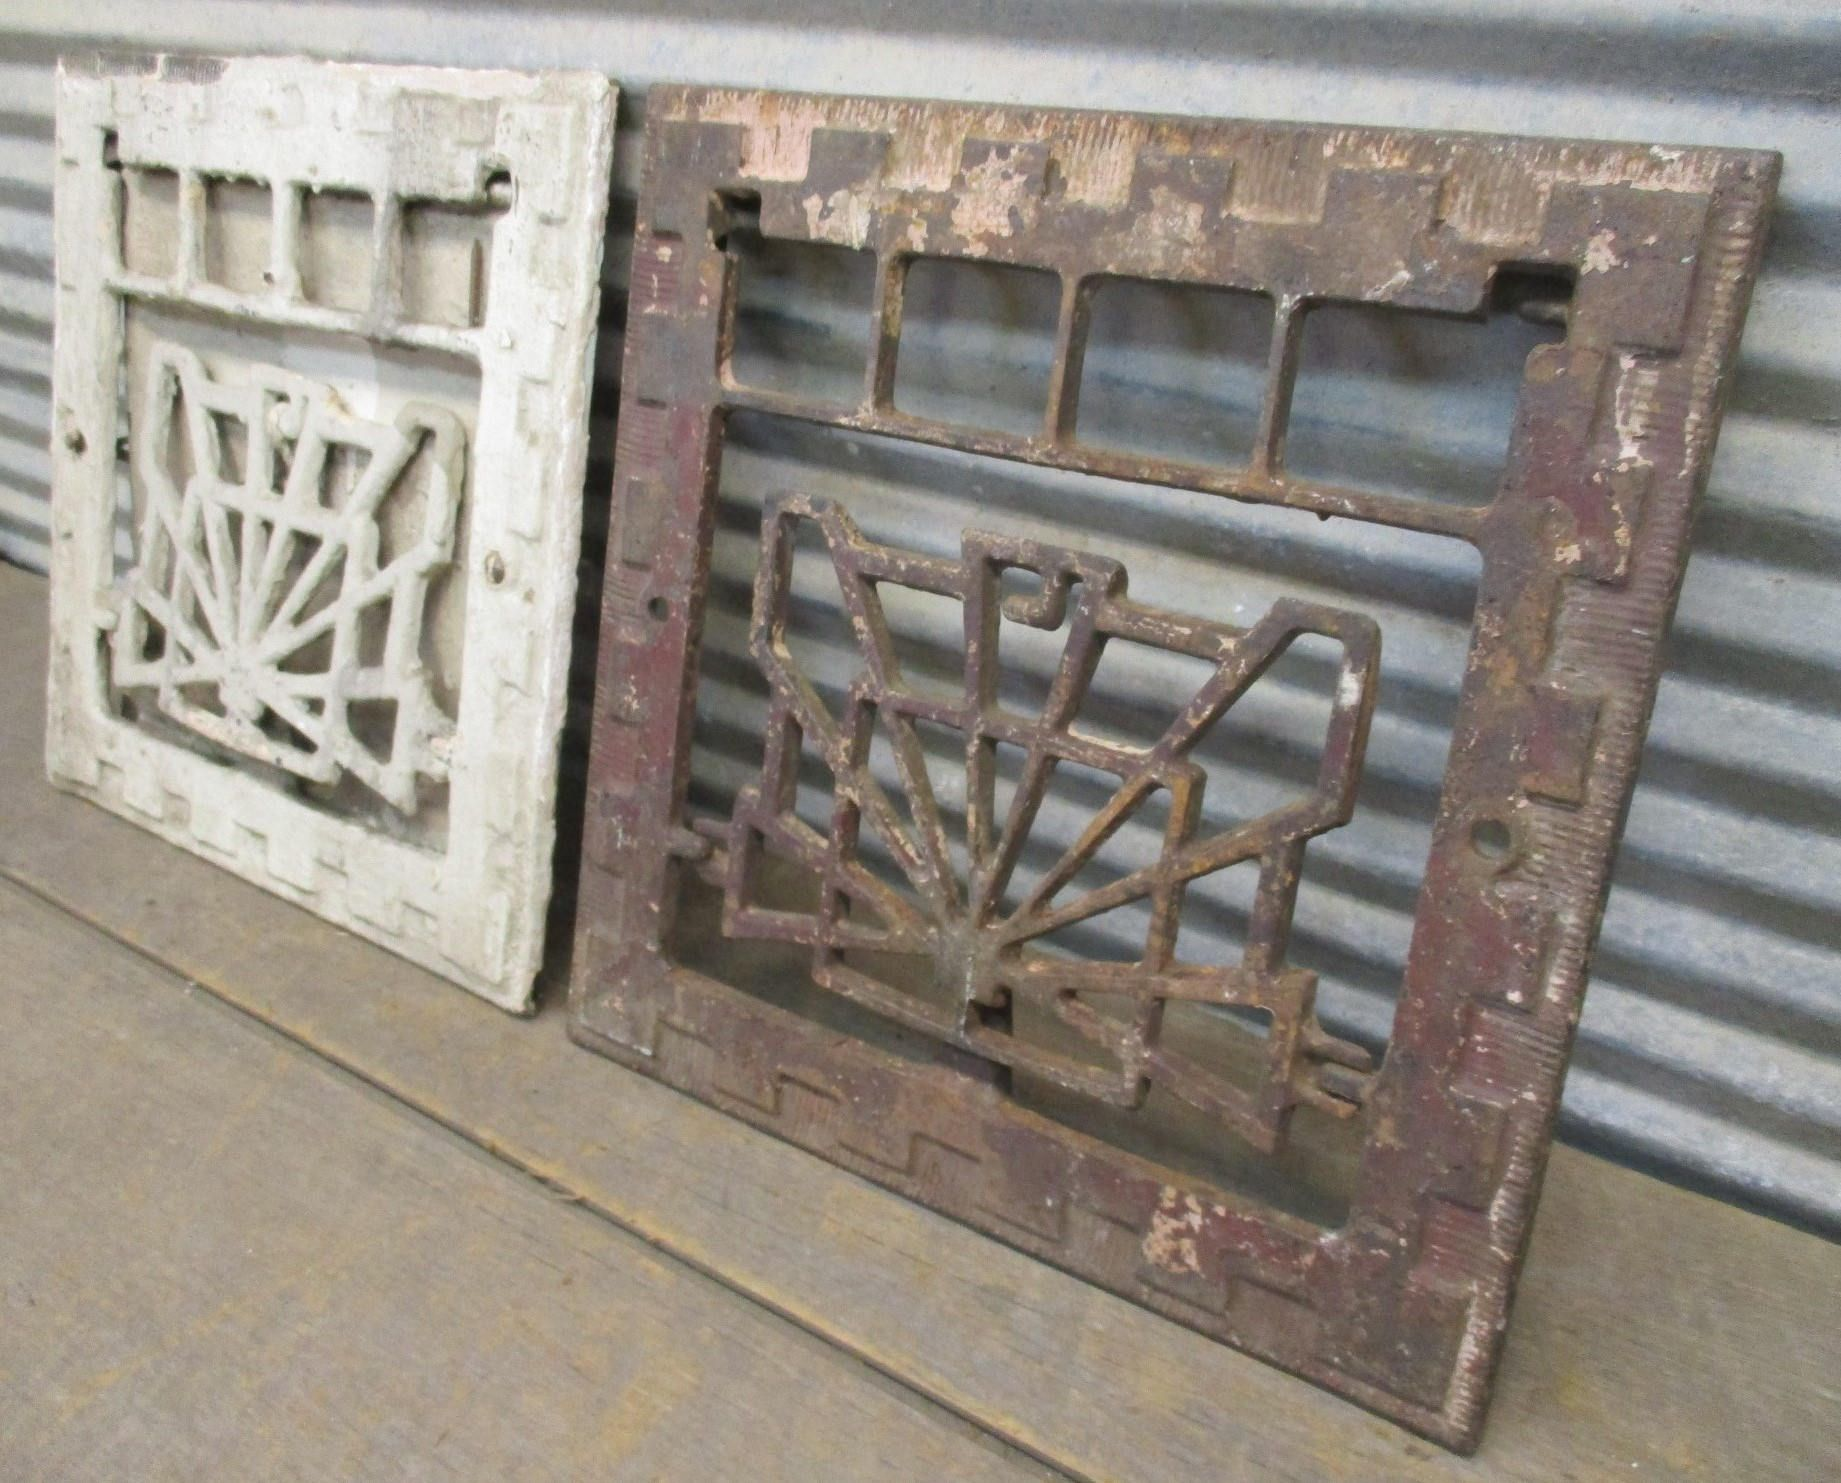 2 Metal Wall Grates Heat Vent Cover Register Cold Air